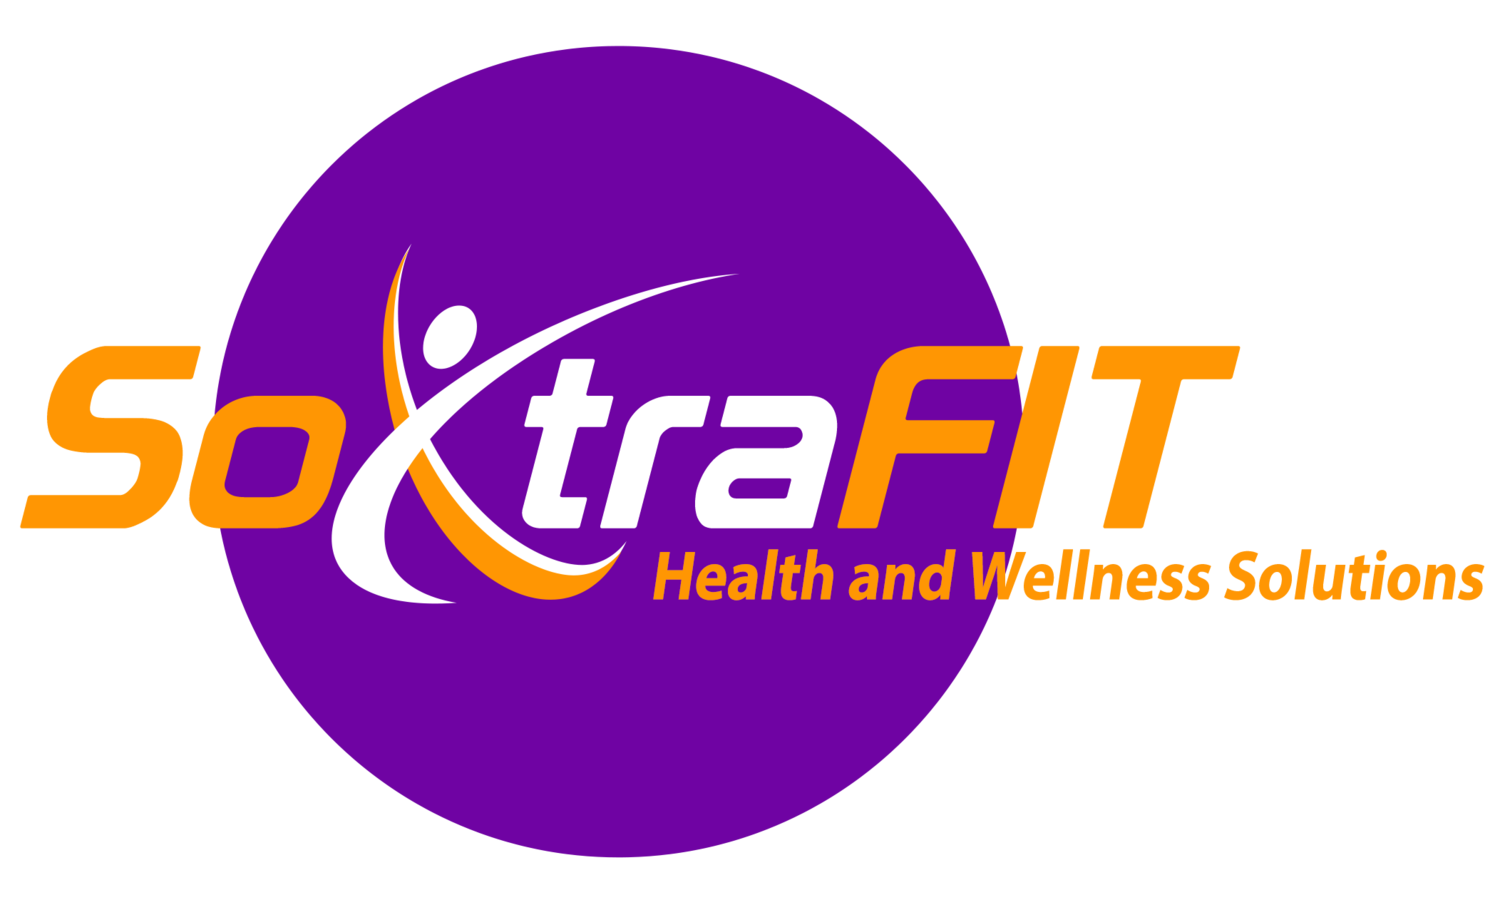 So XtraFIT